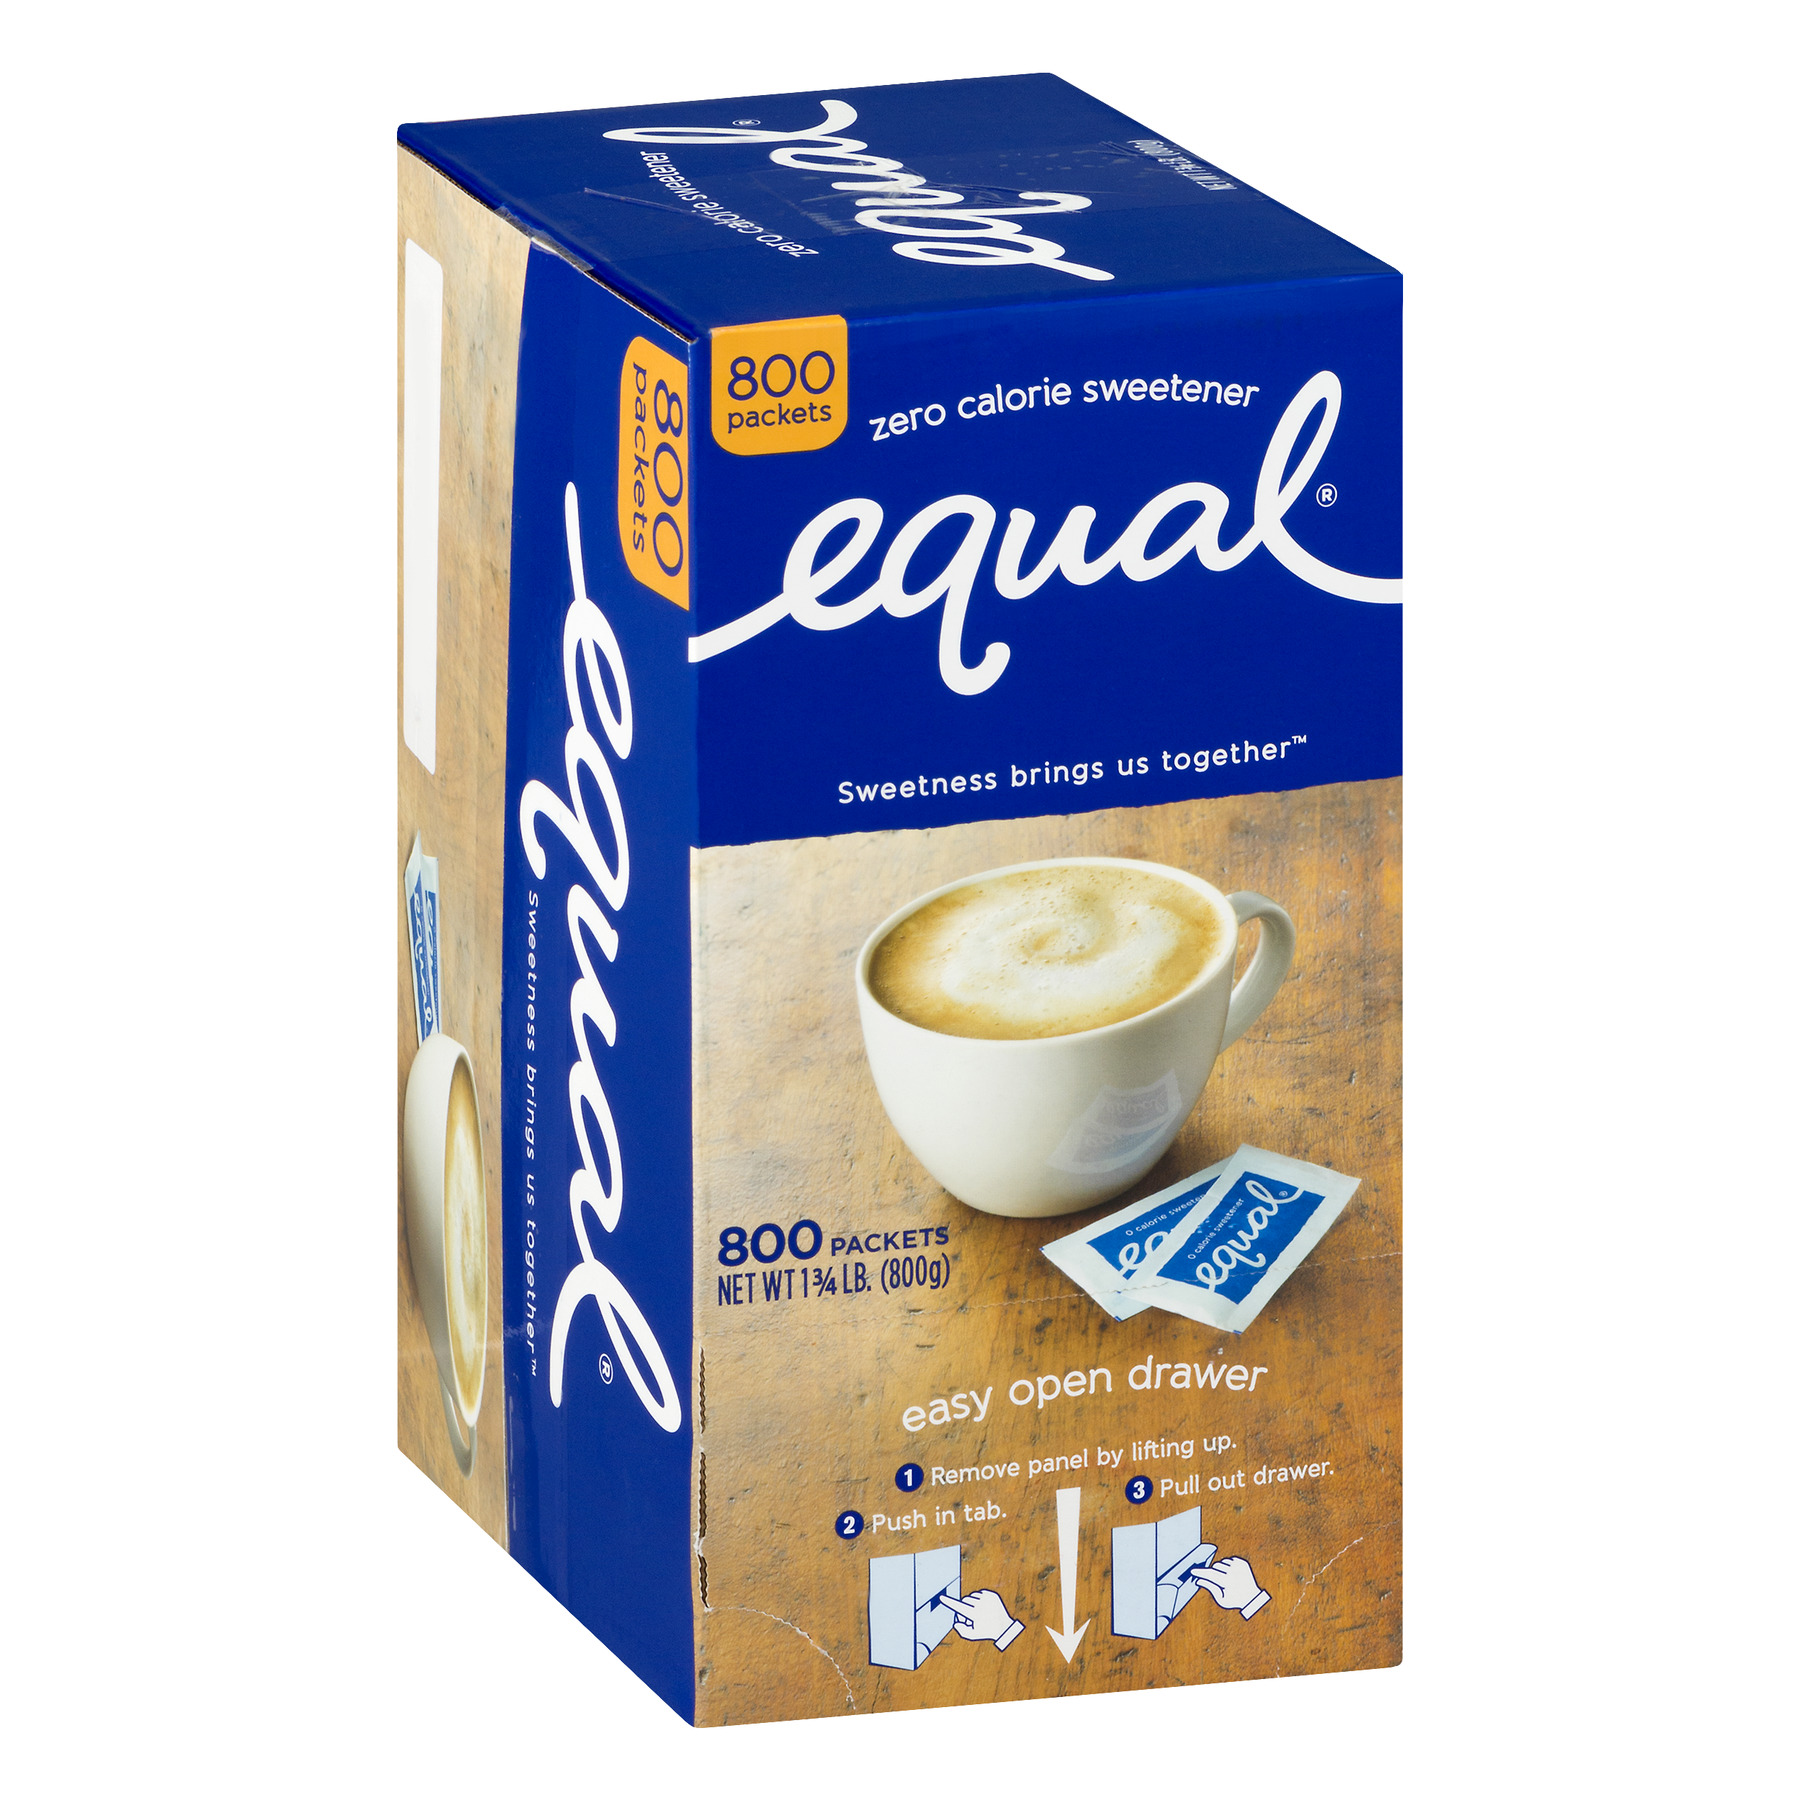 (800 Packets) Equal Sugar-Free Sweetener Packets